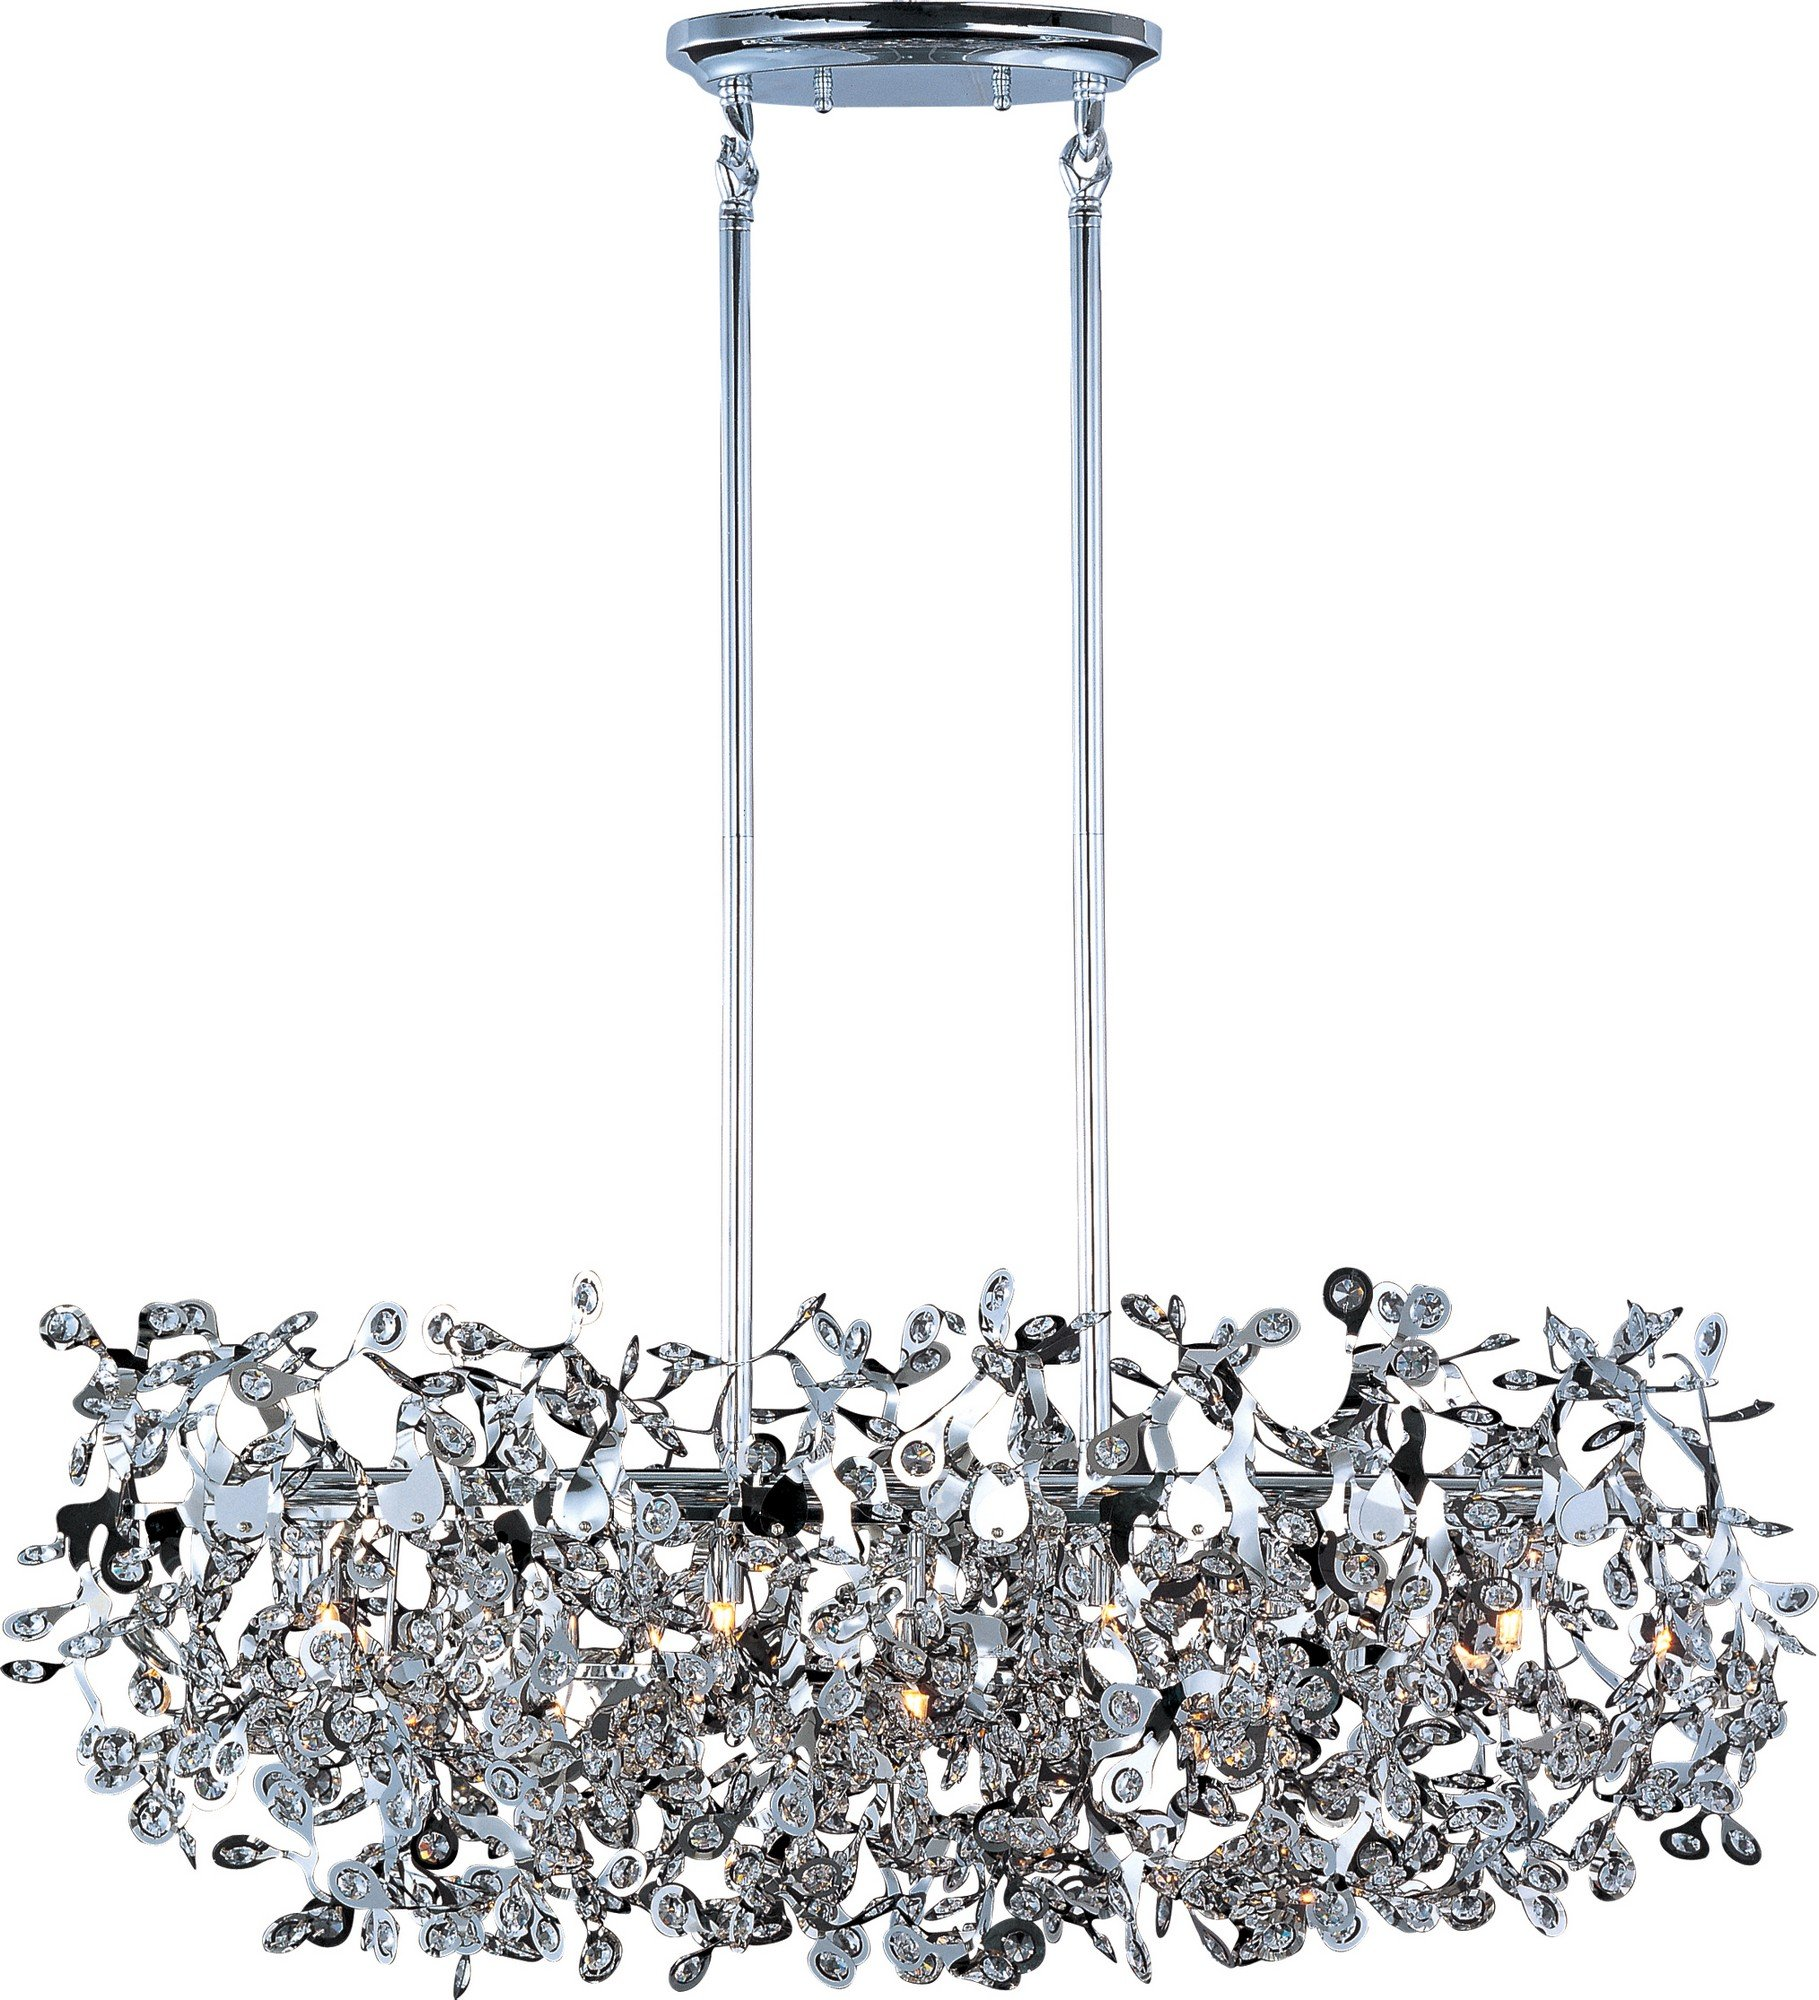 Maxim 24206BCPC Comet 7-Light Pendant, Polished Chrome Finish, Beveled Crystal Glass, G9 Xenon Xenon Bulb , 100W Max., Wet Safety Rating, Standard Dimmable, Glass Shade Material, 1150 Rated Lumens by Maxim Lighting (Image #1)